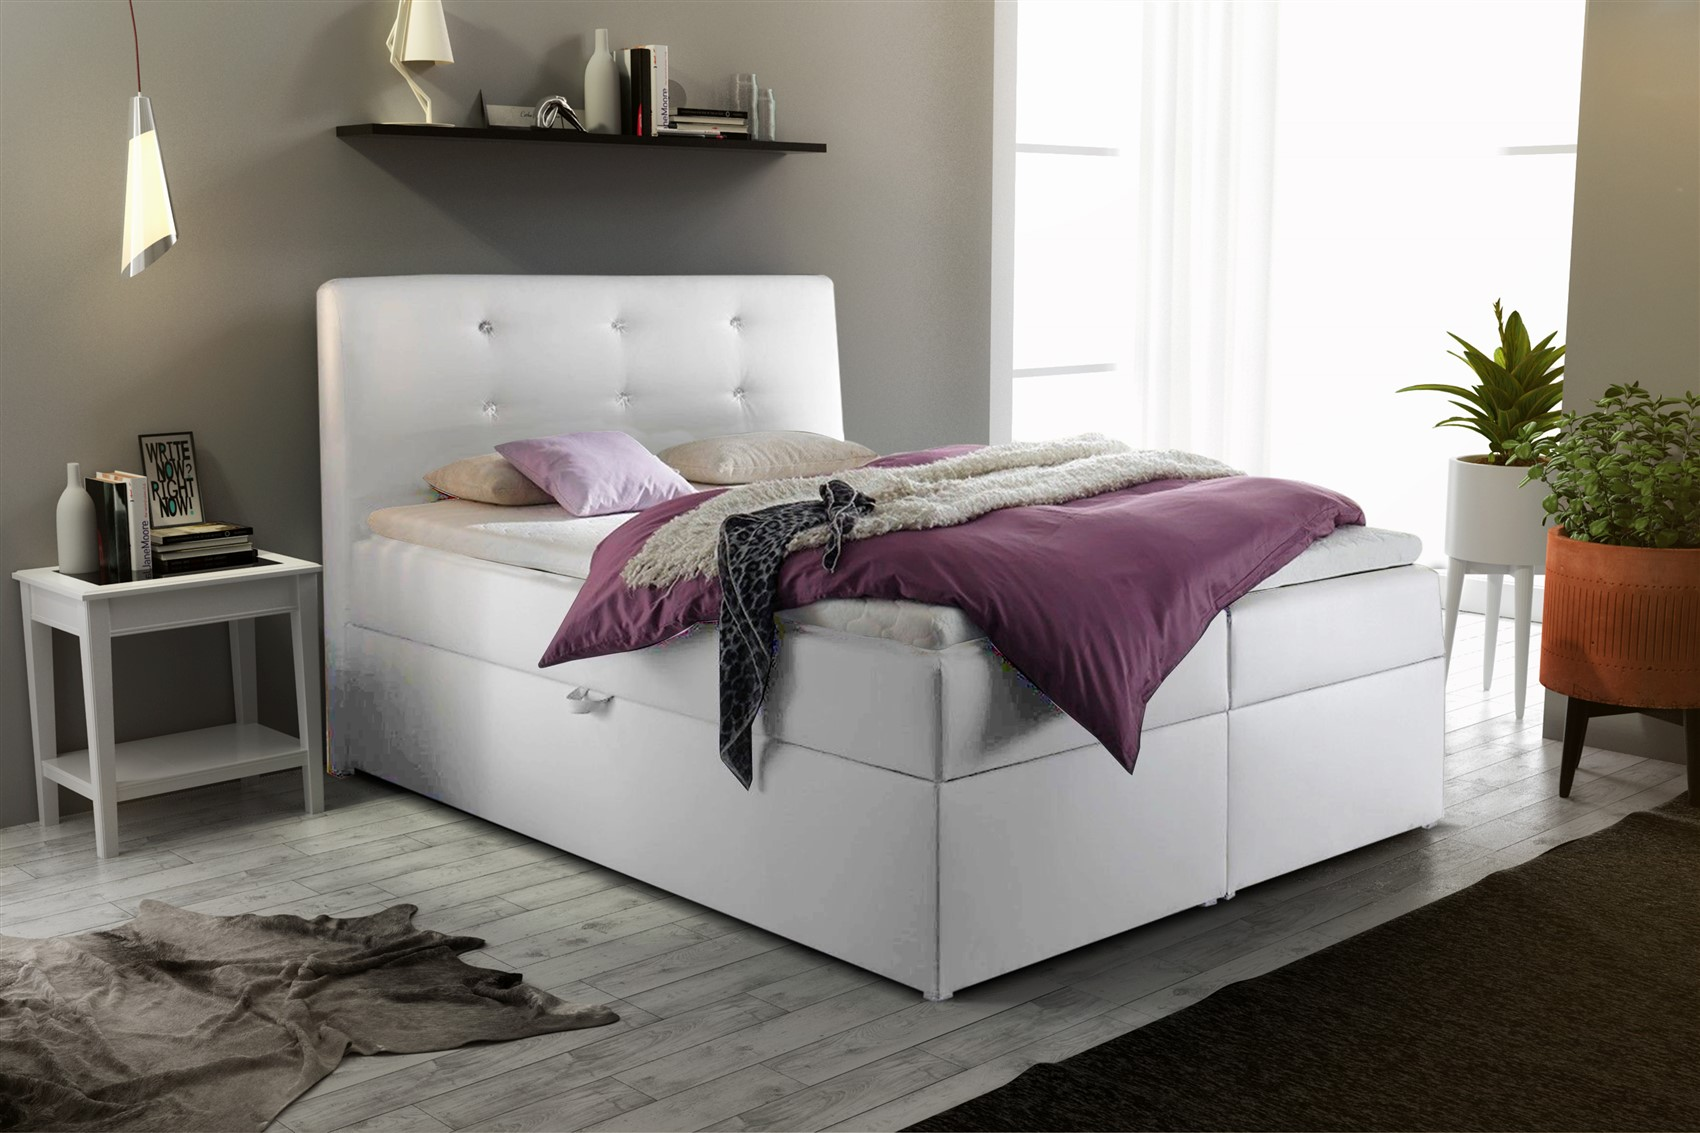 boxspringbett schlafzimmerbett monza kunstleder weiss 140x200 cm fun m bel. Black Bedroom Furniture Sets. Home Design Ideas